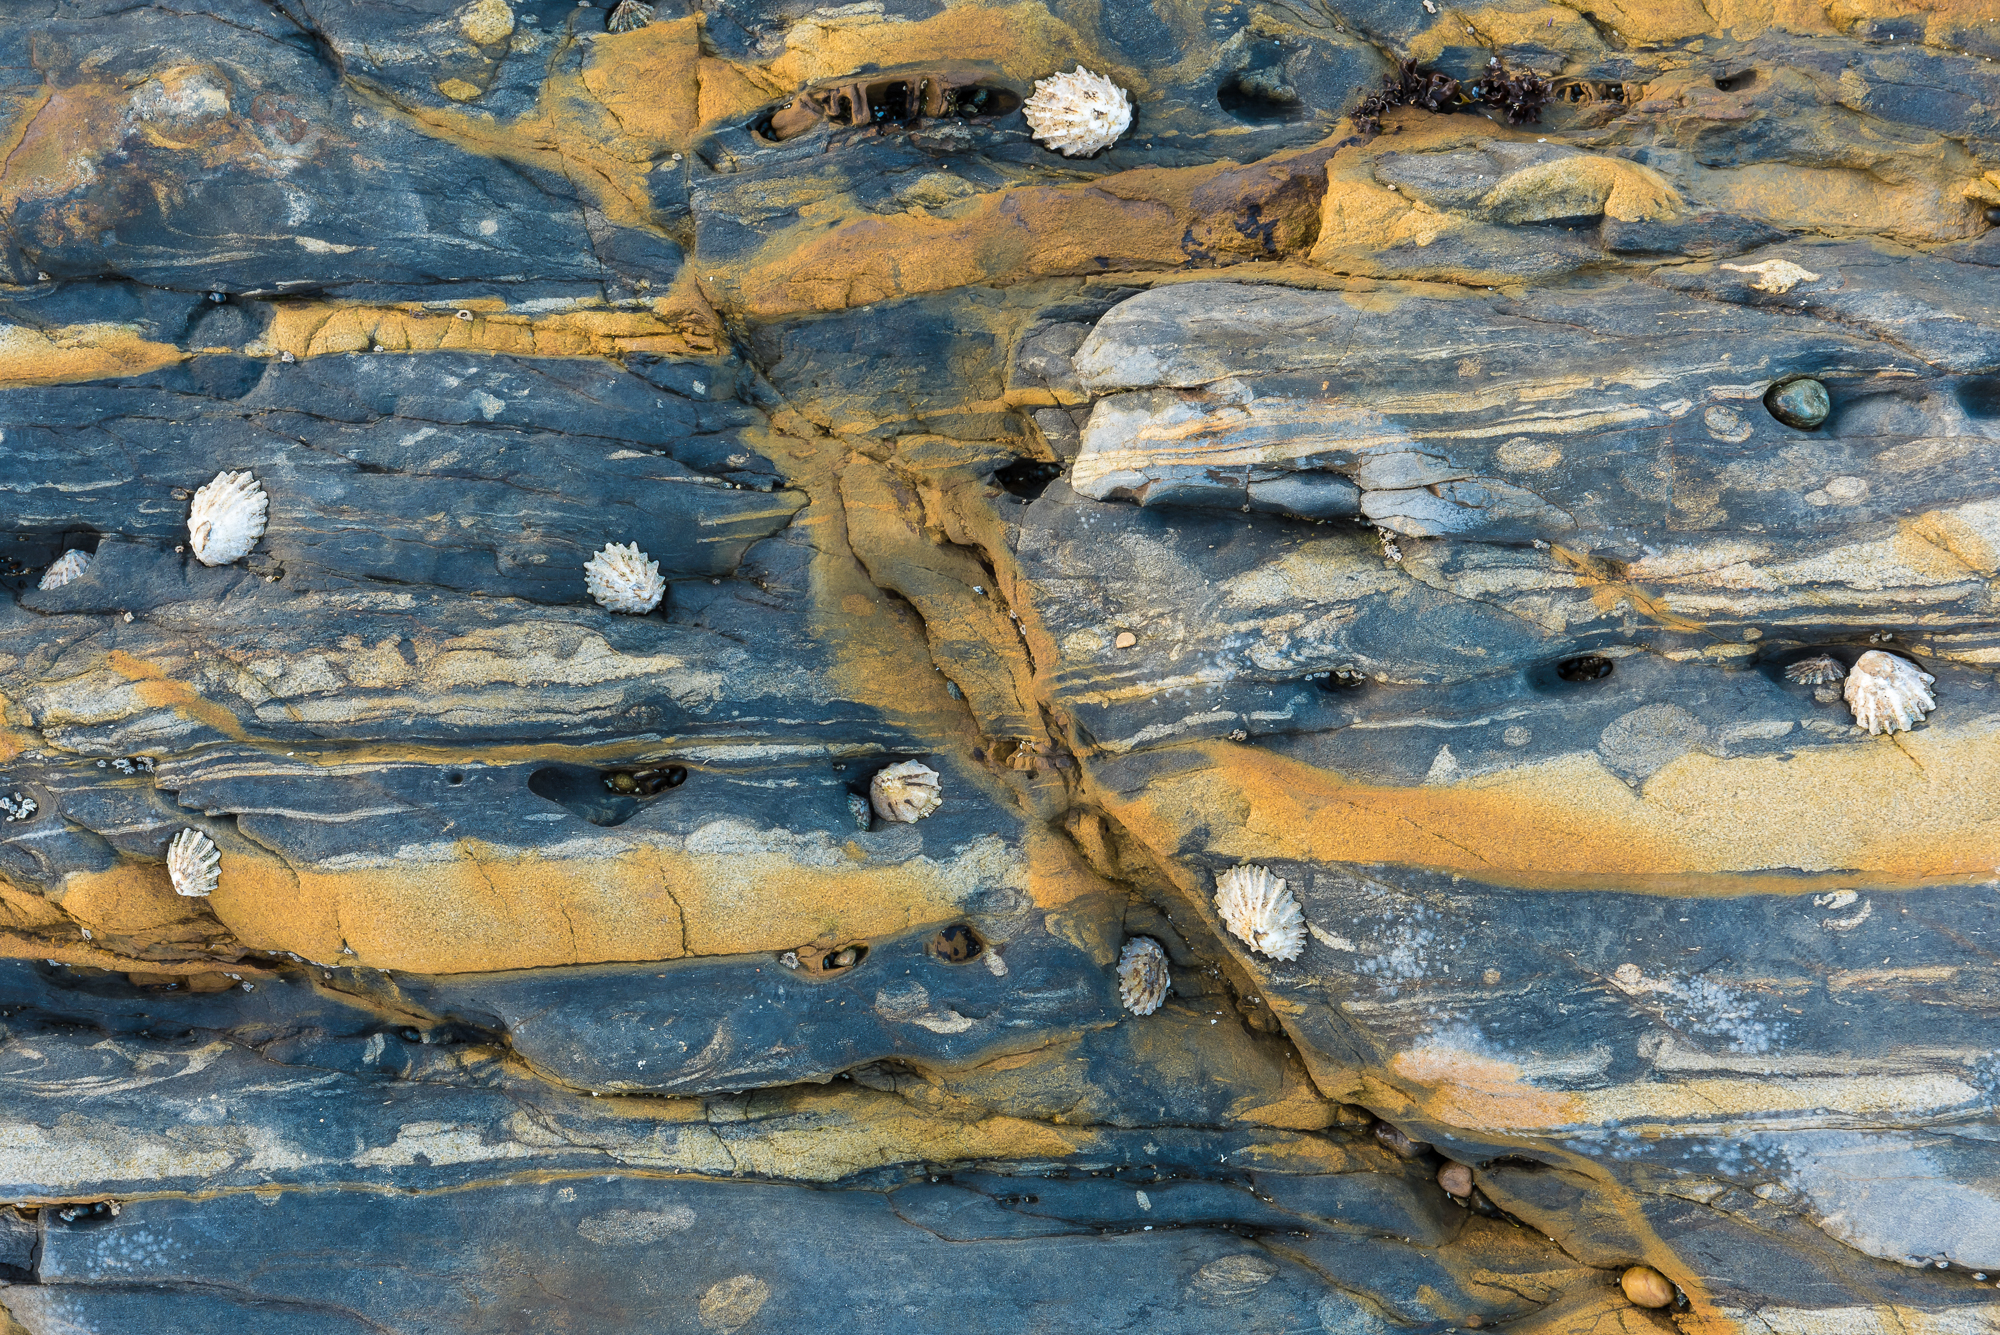 Barnacles and rock layers. Pt. Lobos Reserve, CA.